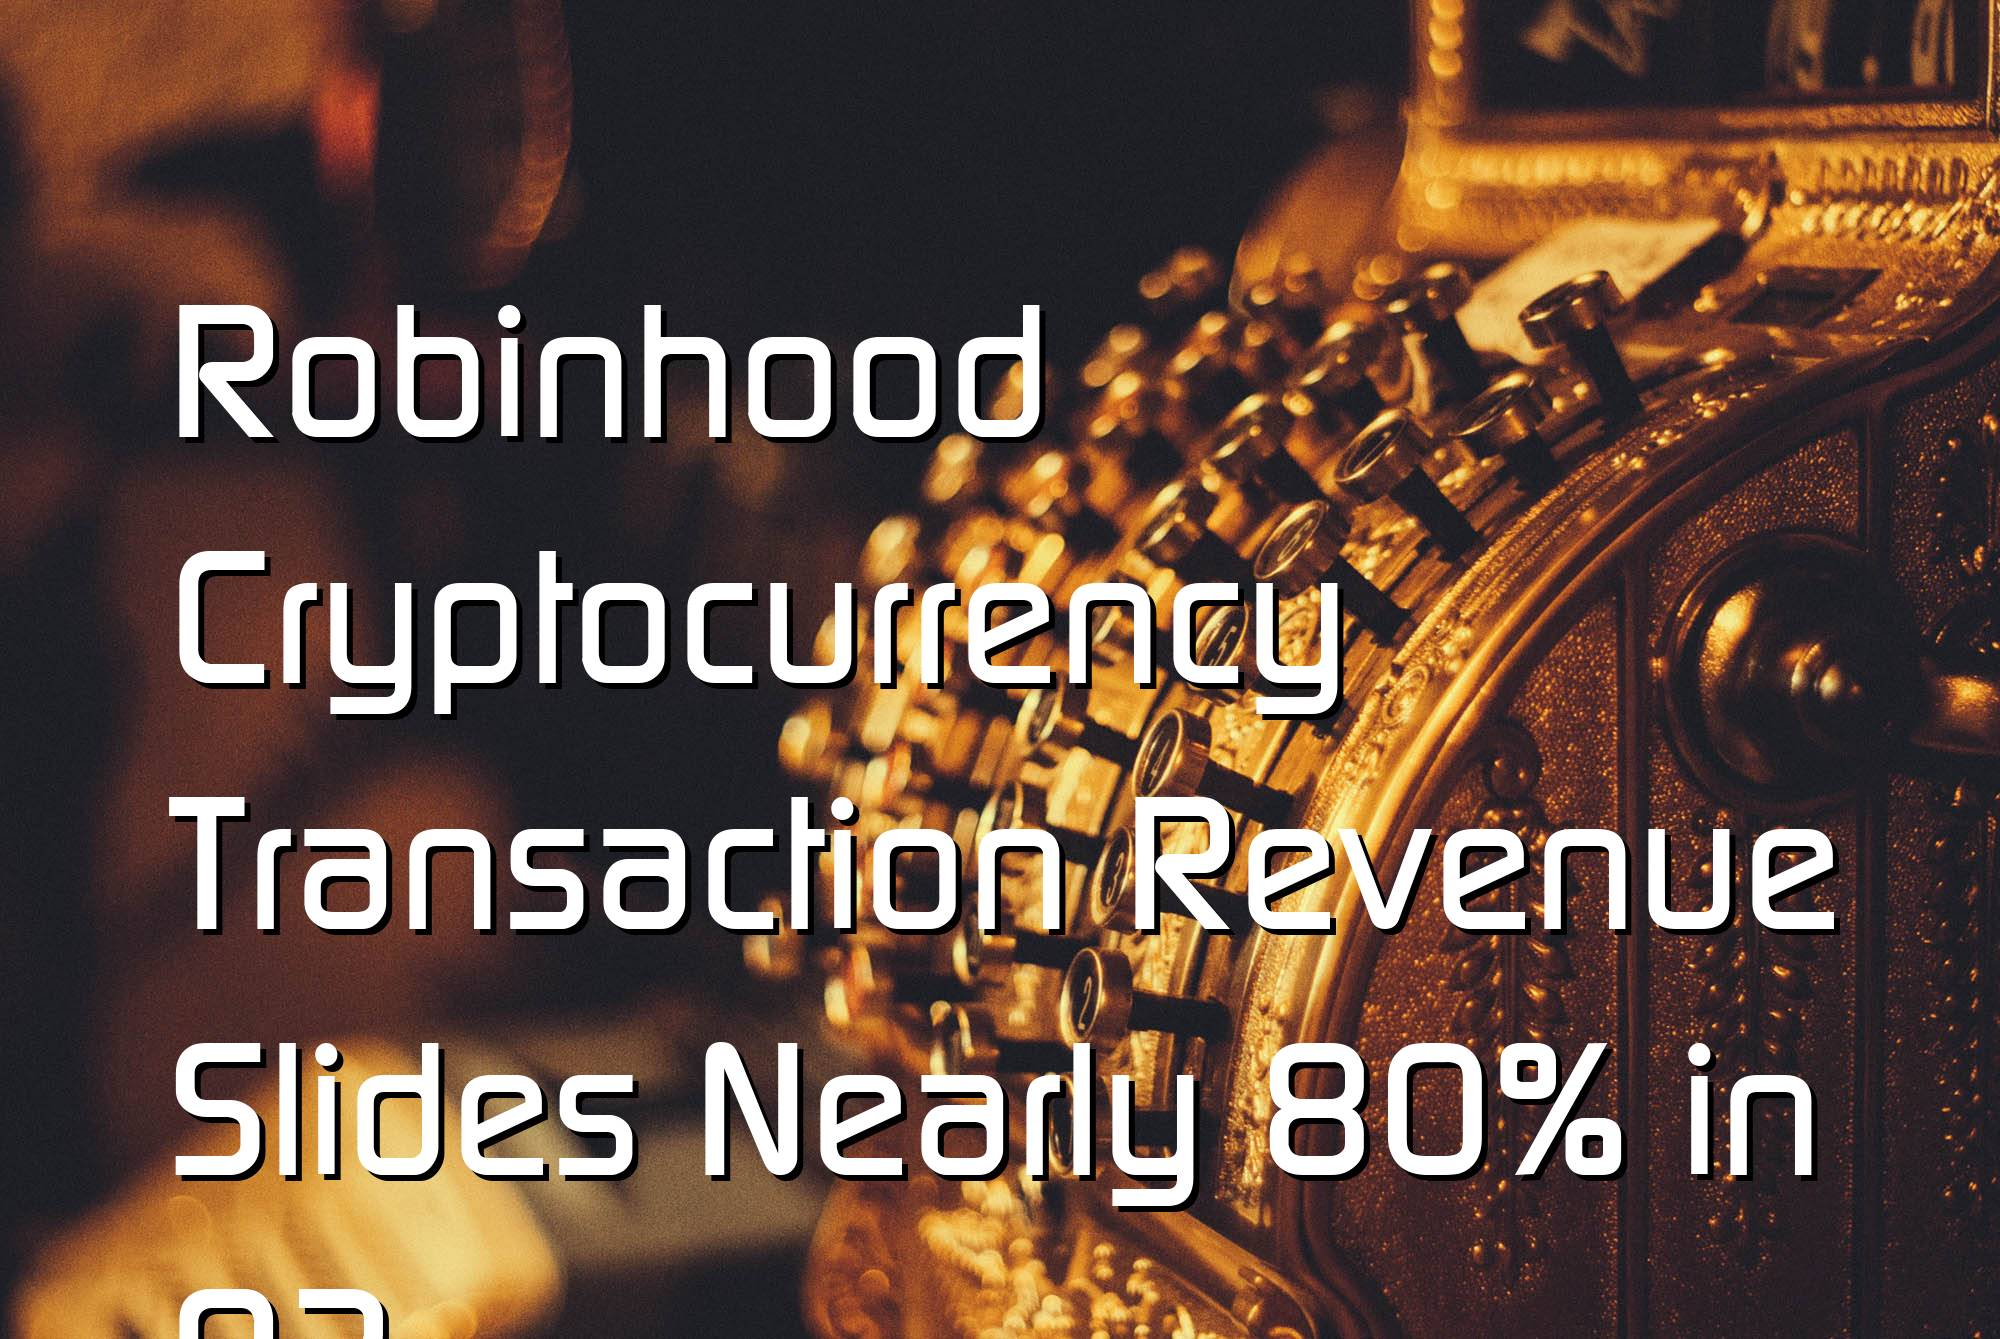 @$60863: Robinhood Cryptocurrency Transaction Revenue Slides Nearly 80% in Q3